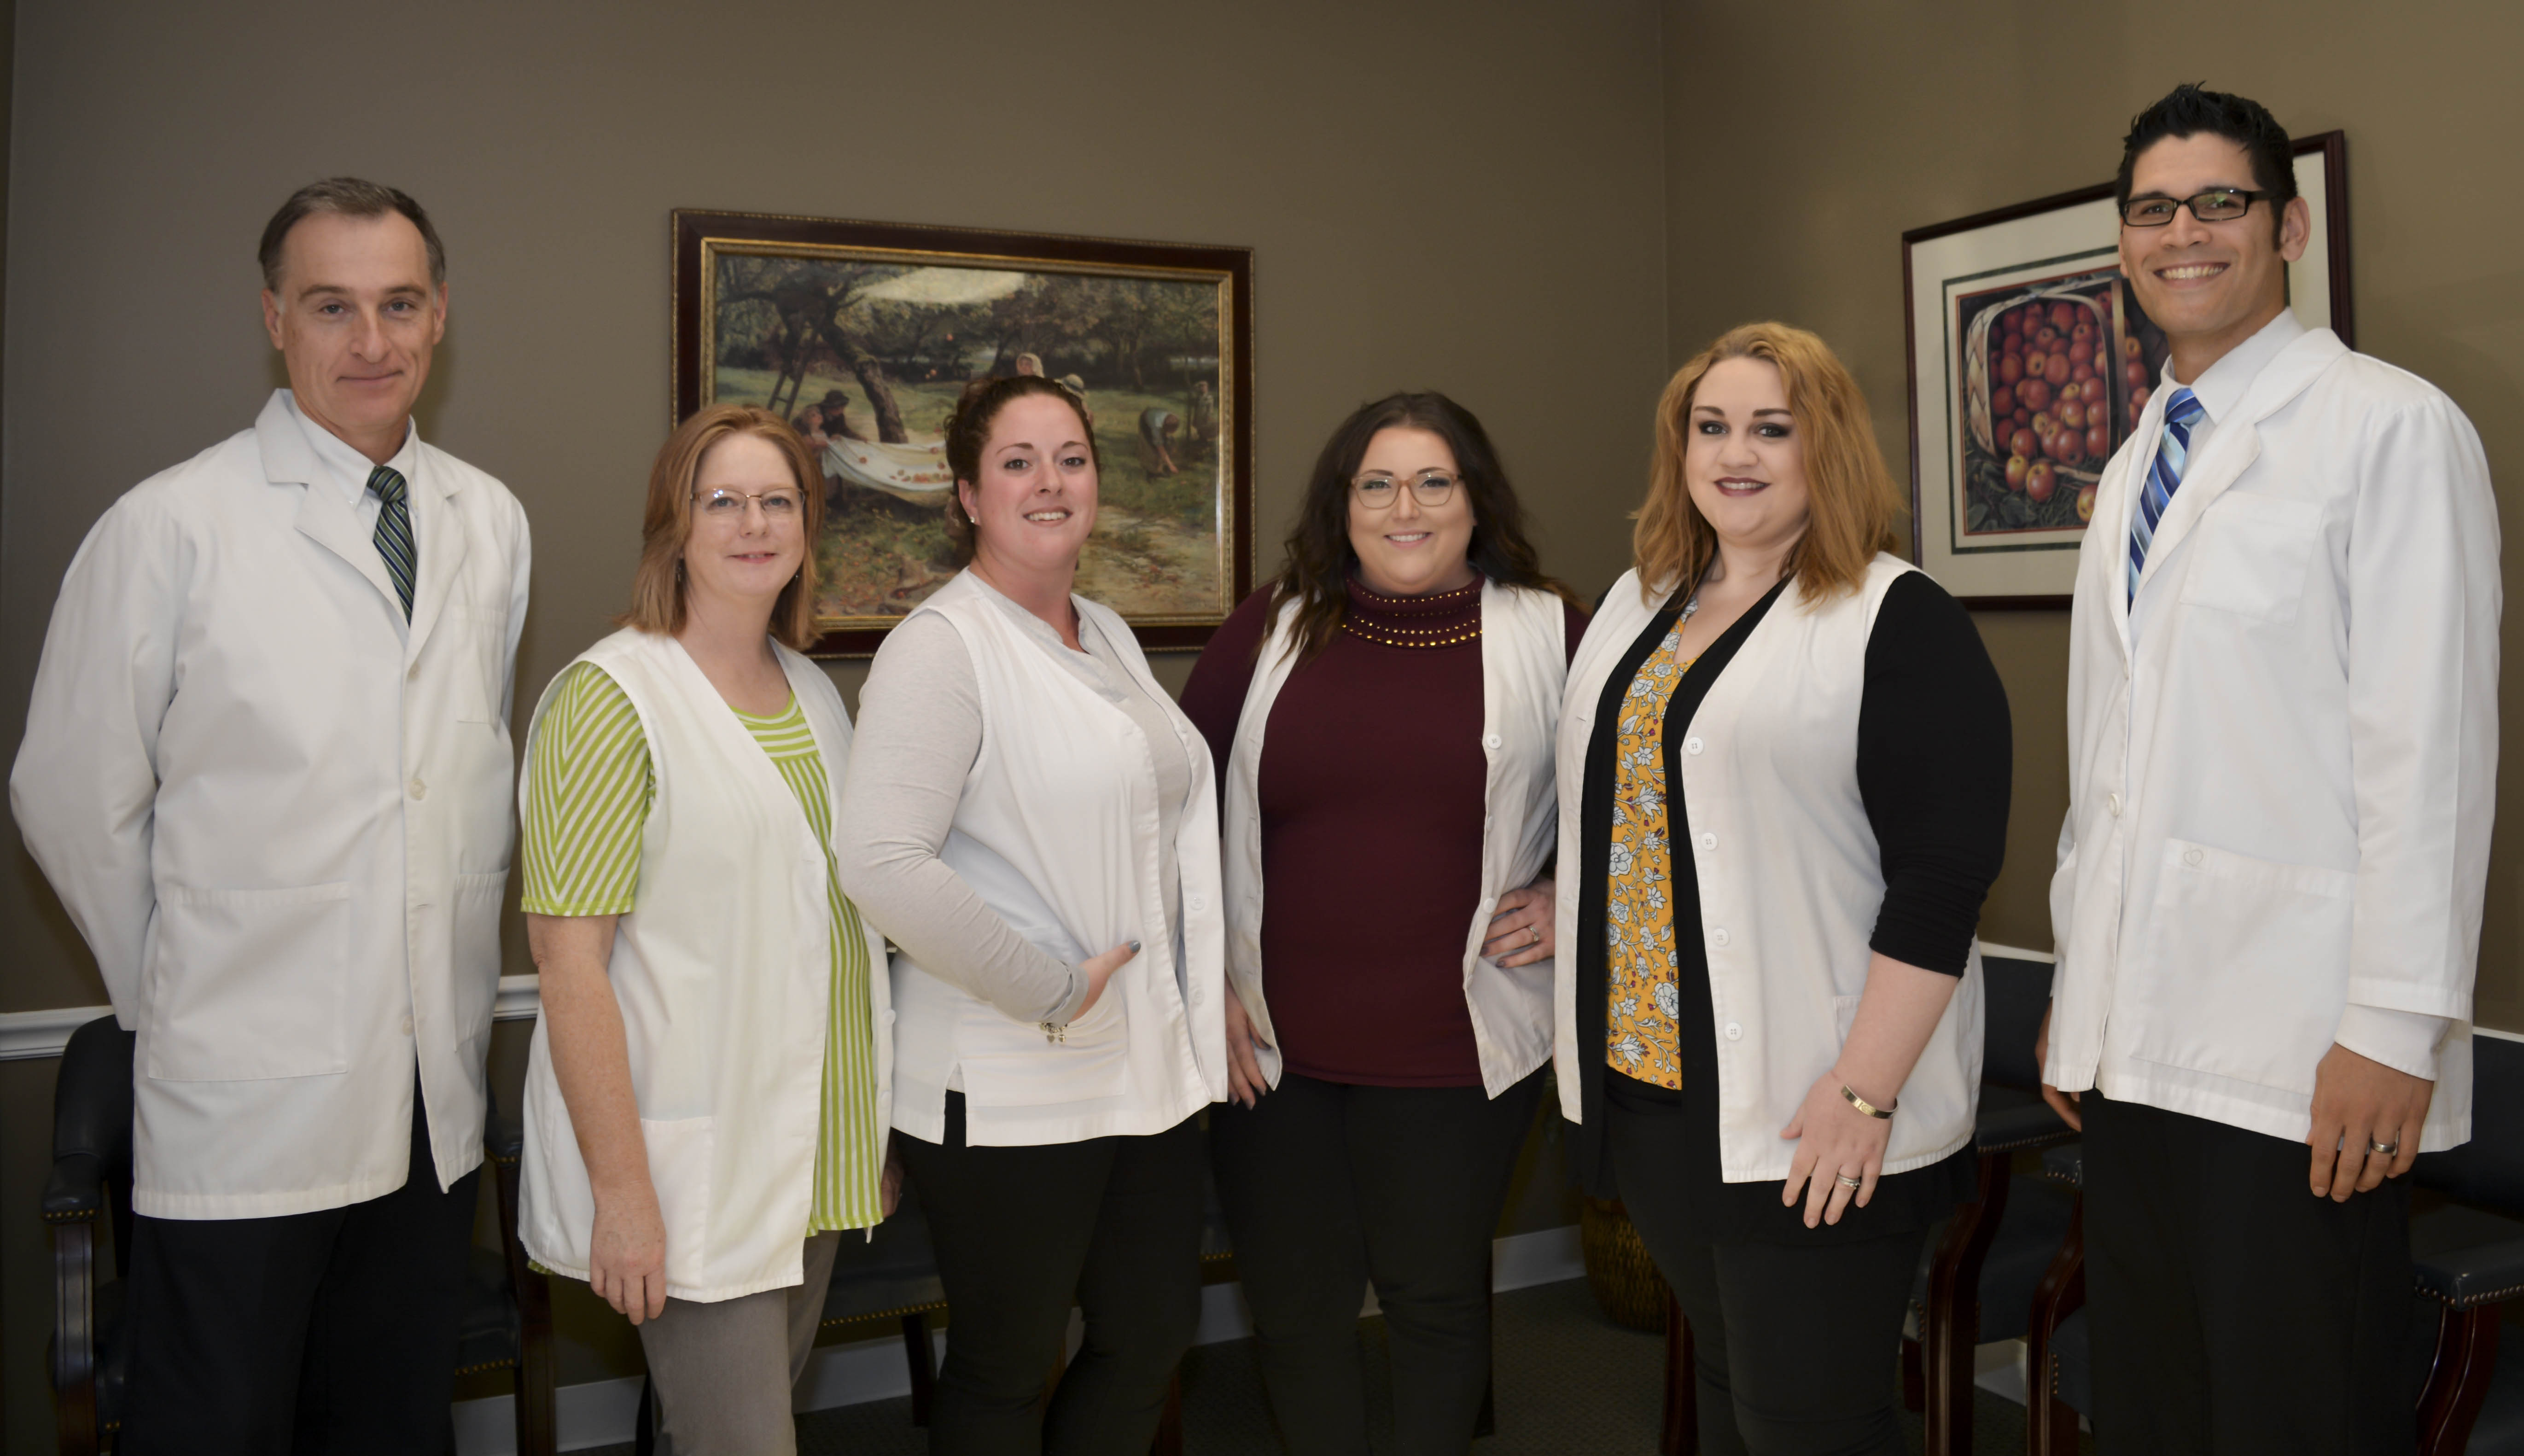 Meet the team at The Apple Valley Clinic in Hendersonville, NC